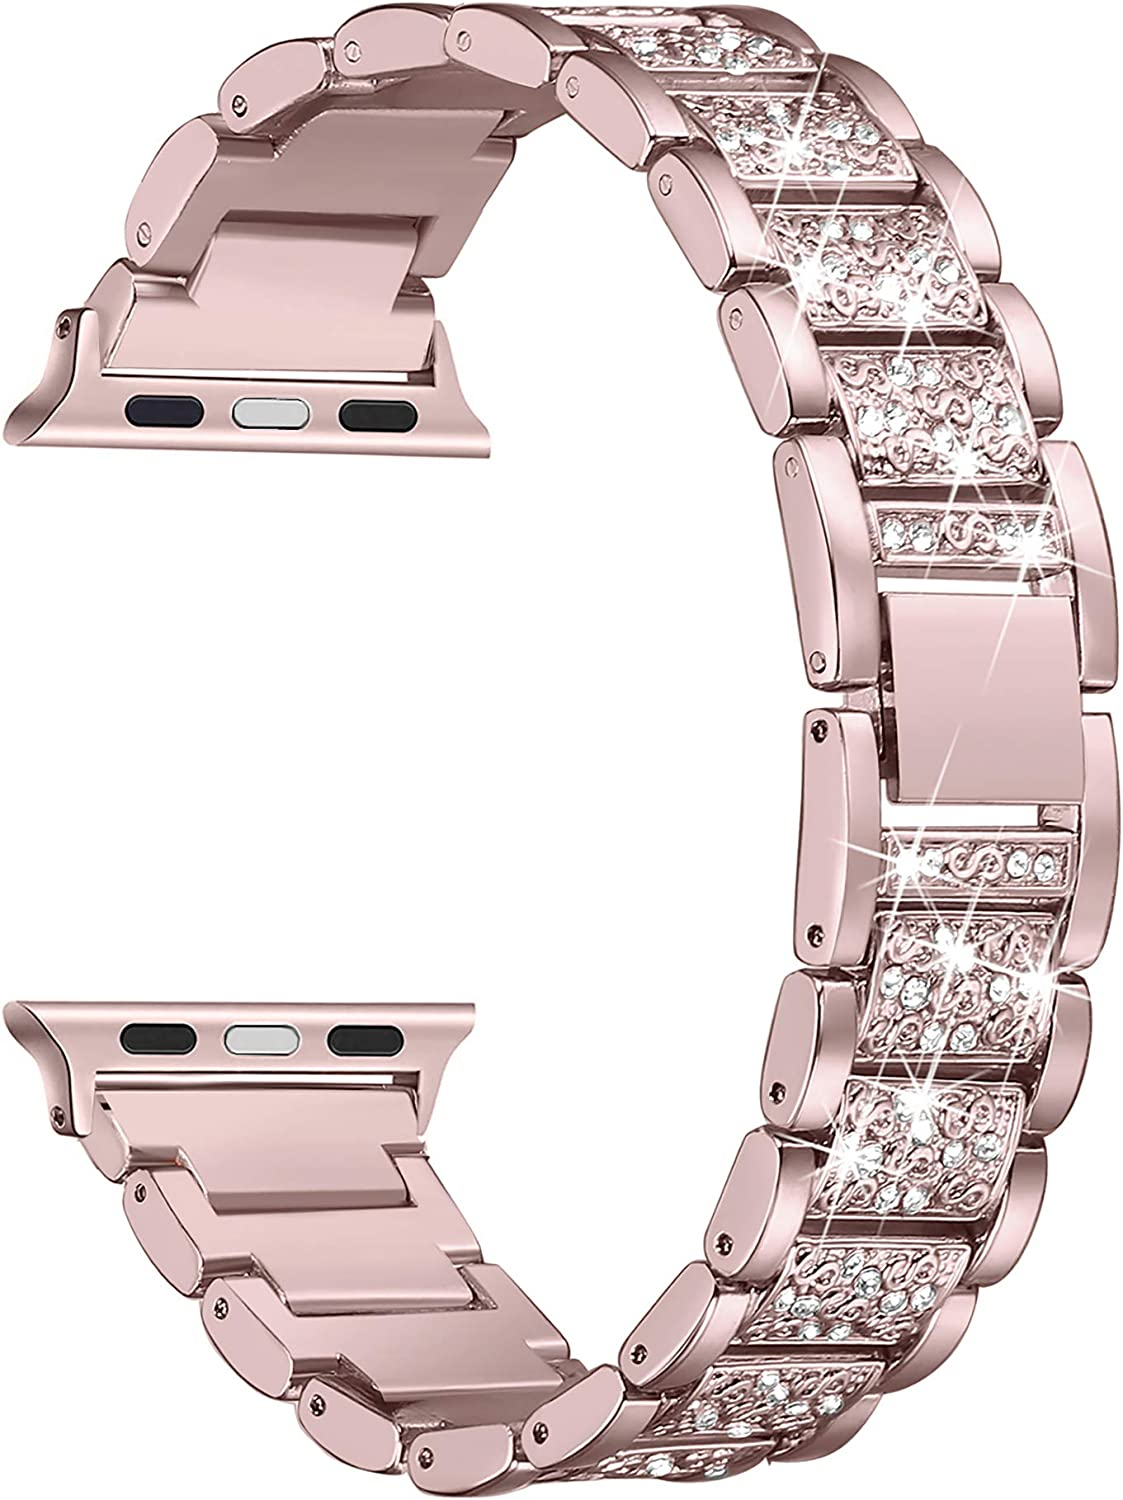 Secbolt Bling Bands Compatible with Apple Watch Band 42mm 44mm Women iWatch SE Series 6/5/4/3/2/1, Dressy Jewelry Metal Bracelet with Rhinestones, Rose Gold